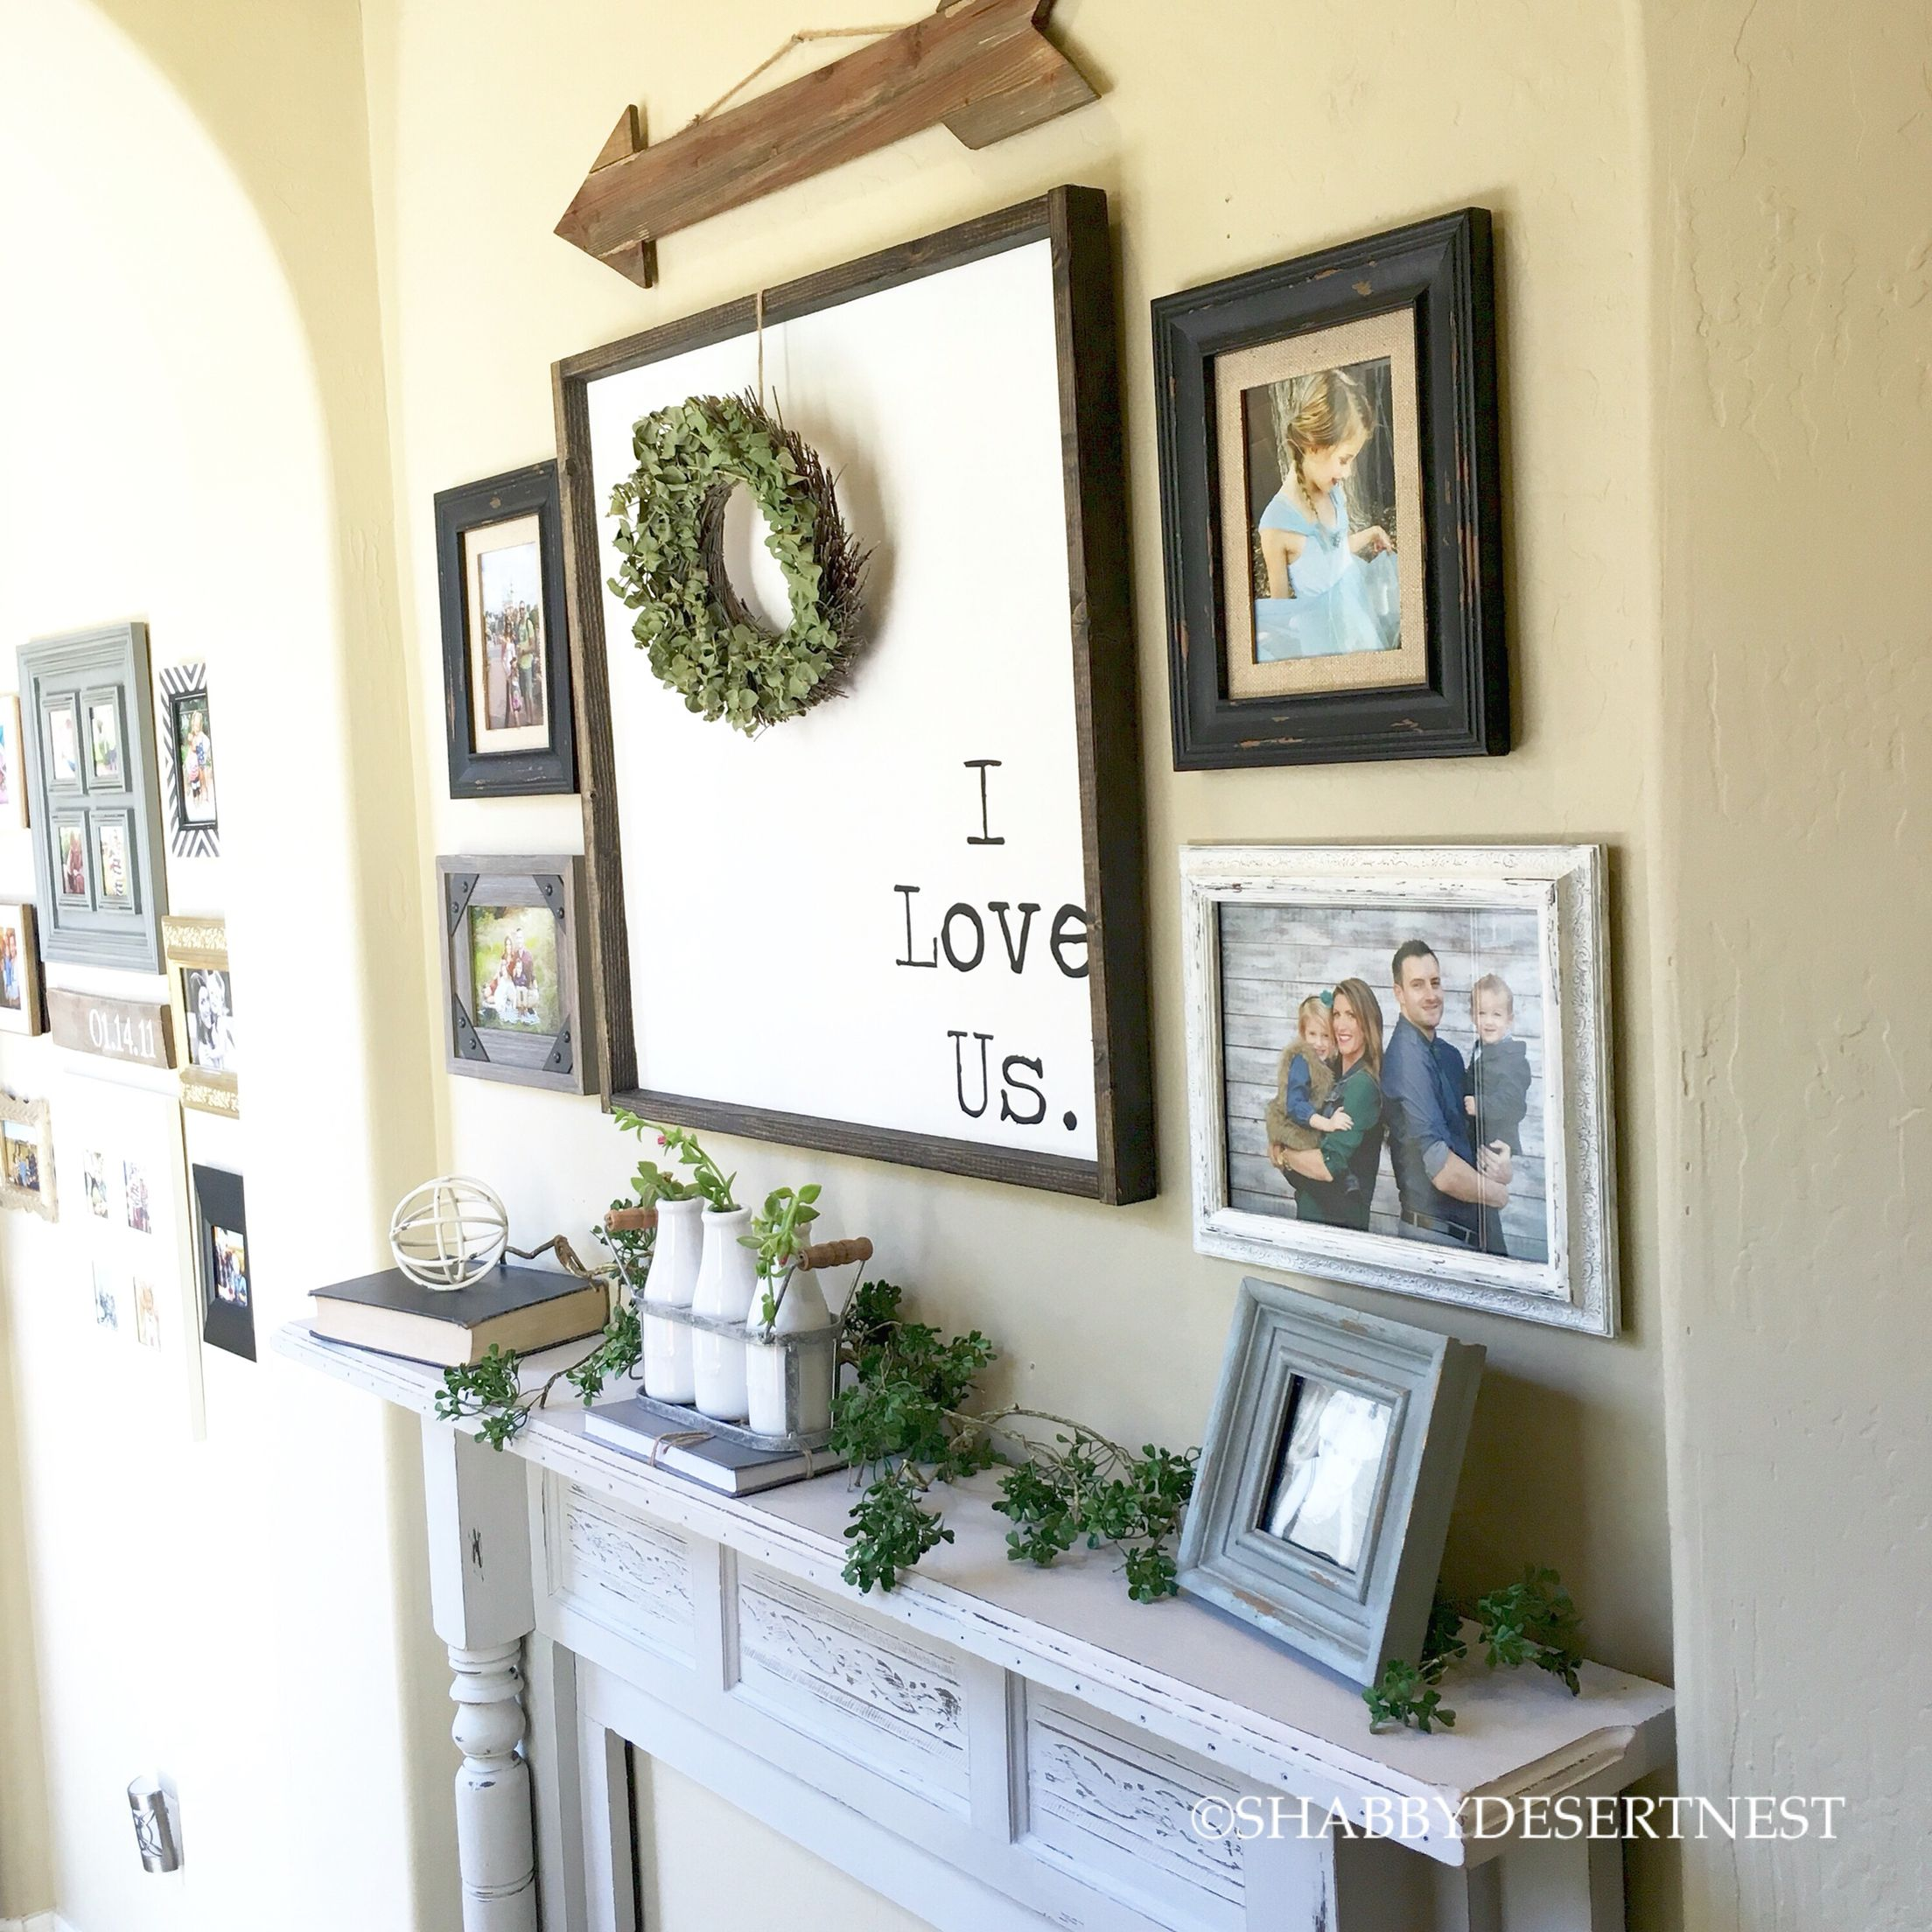 Gallery wall with antique mantel | Jaci @shabbydesertnest on ...